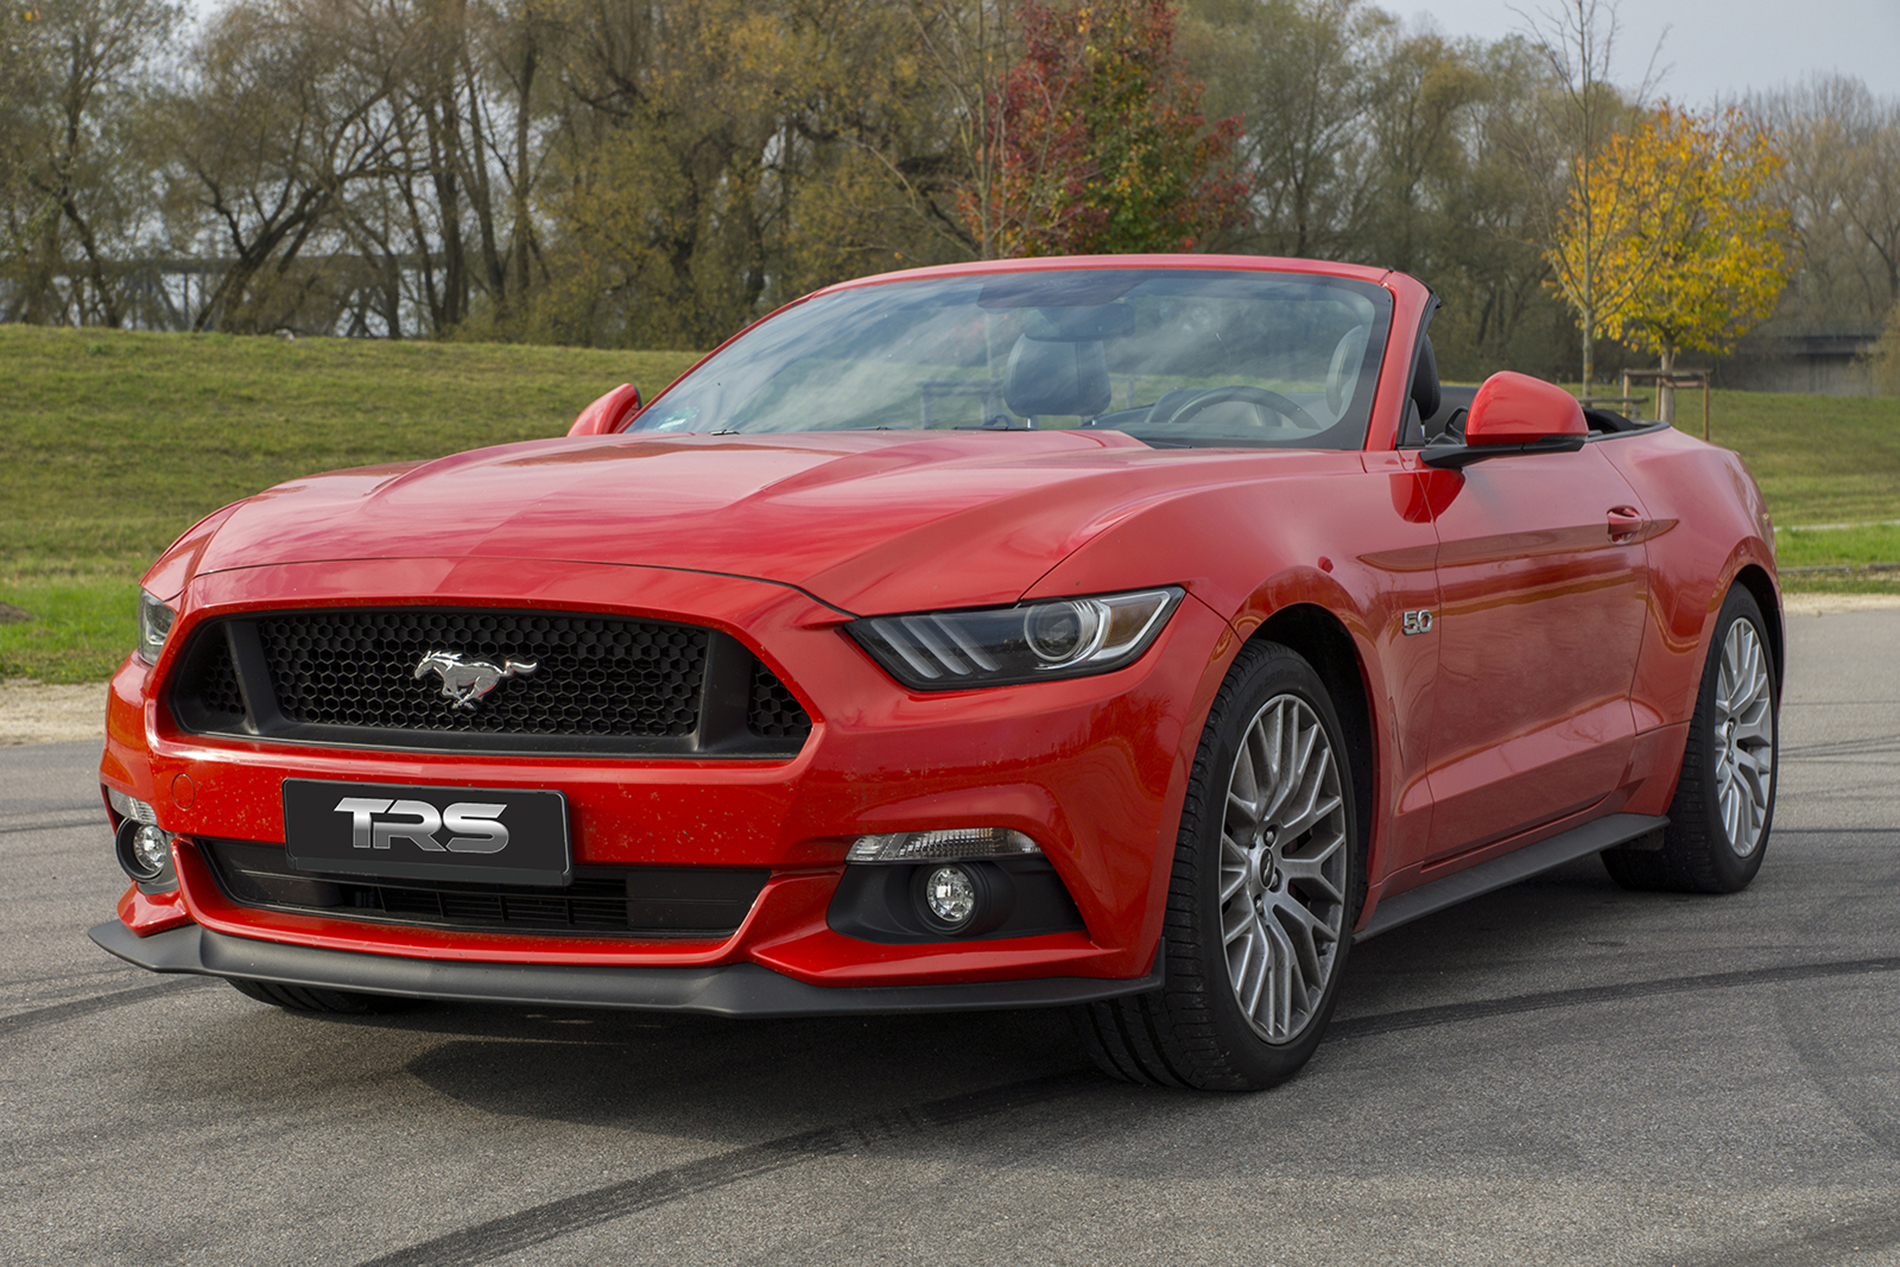 Ford Mustang Convertible GT 5.0